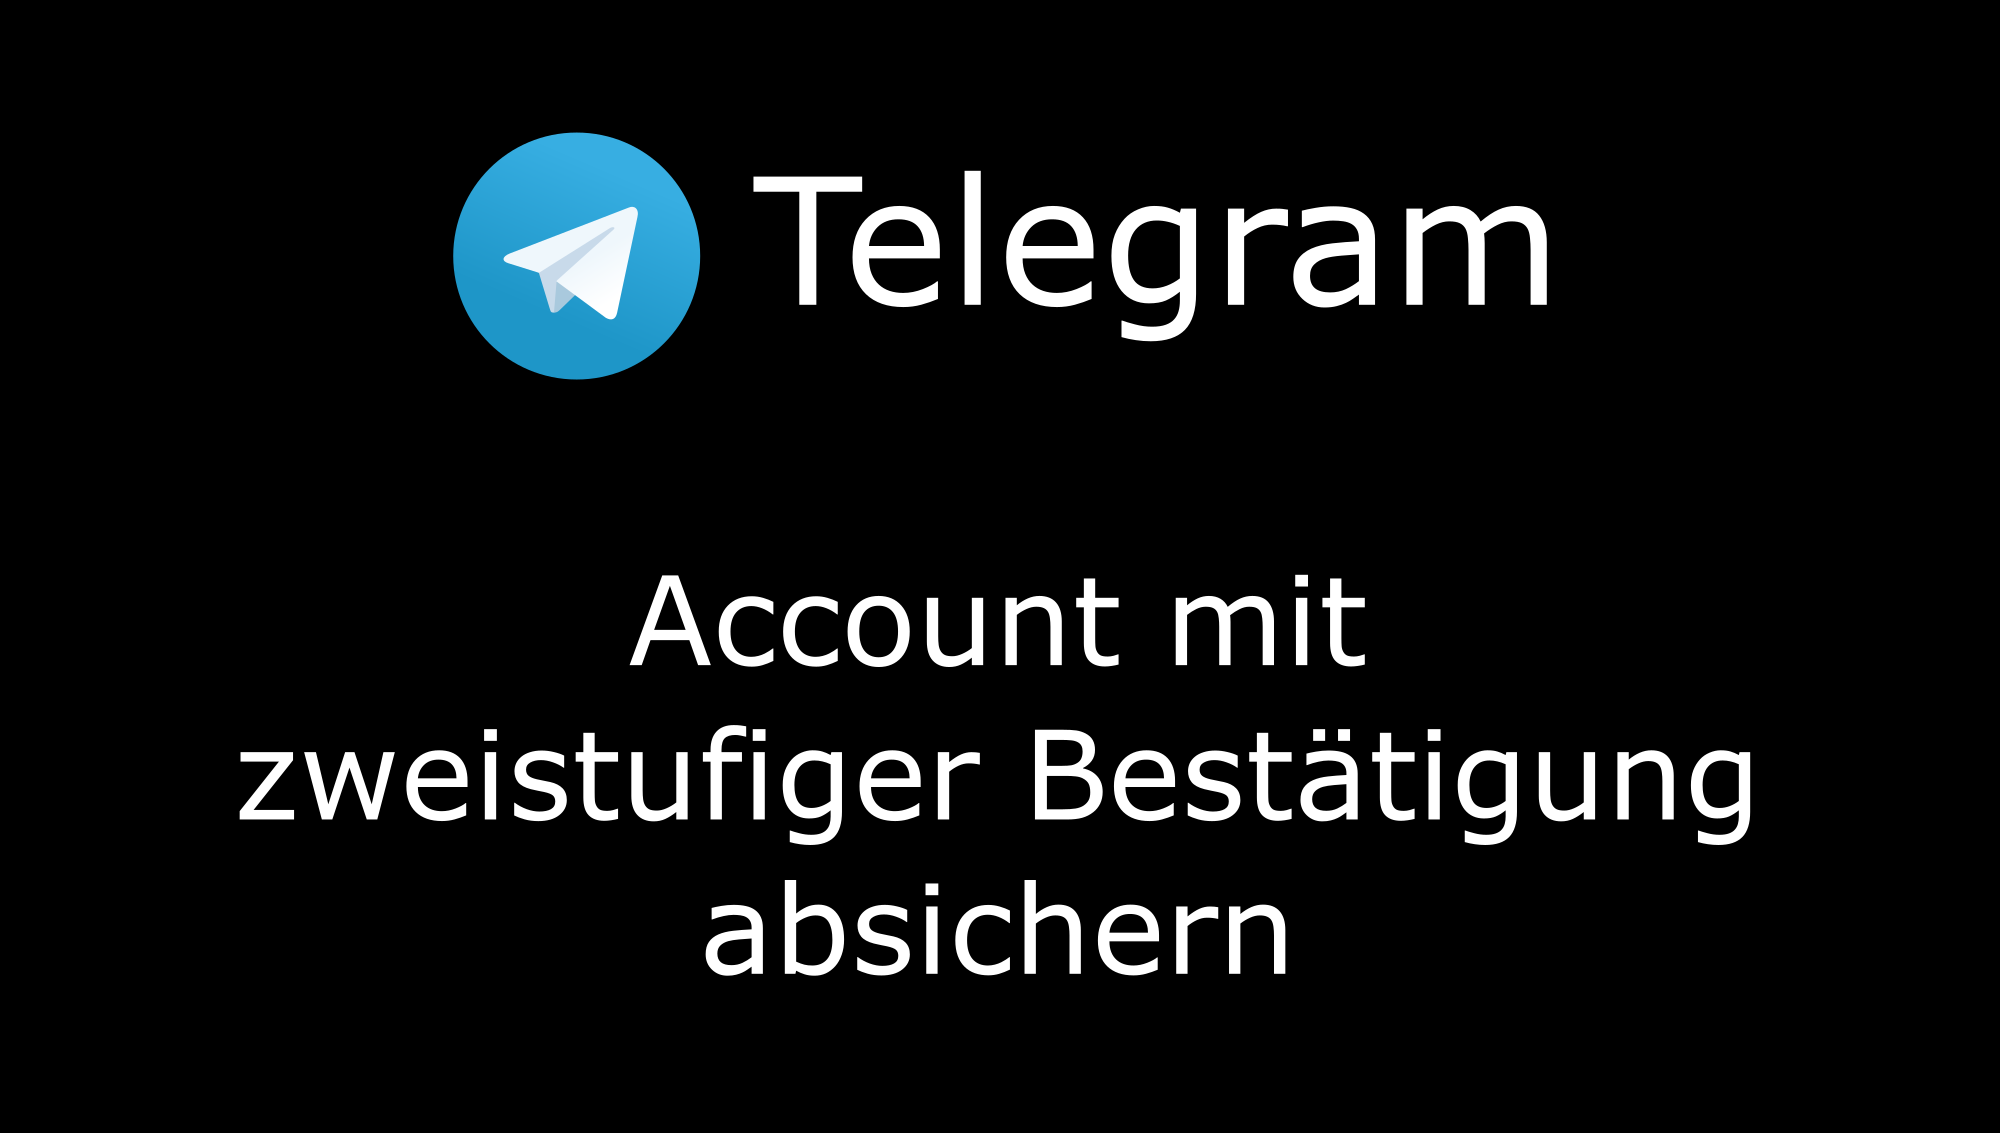 Telegram-Account mit zweistufiger Bestätigung absichern (Two-Step-Verification)